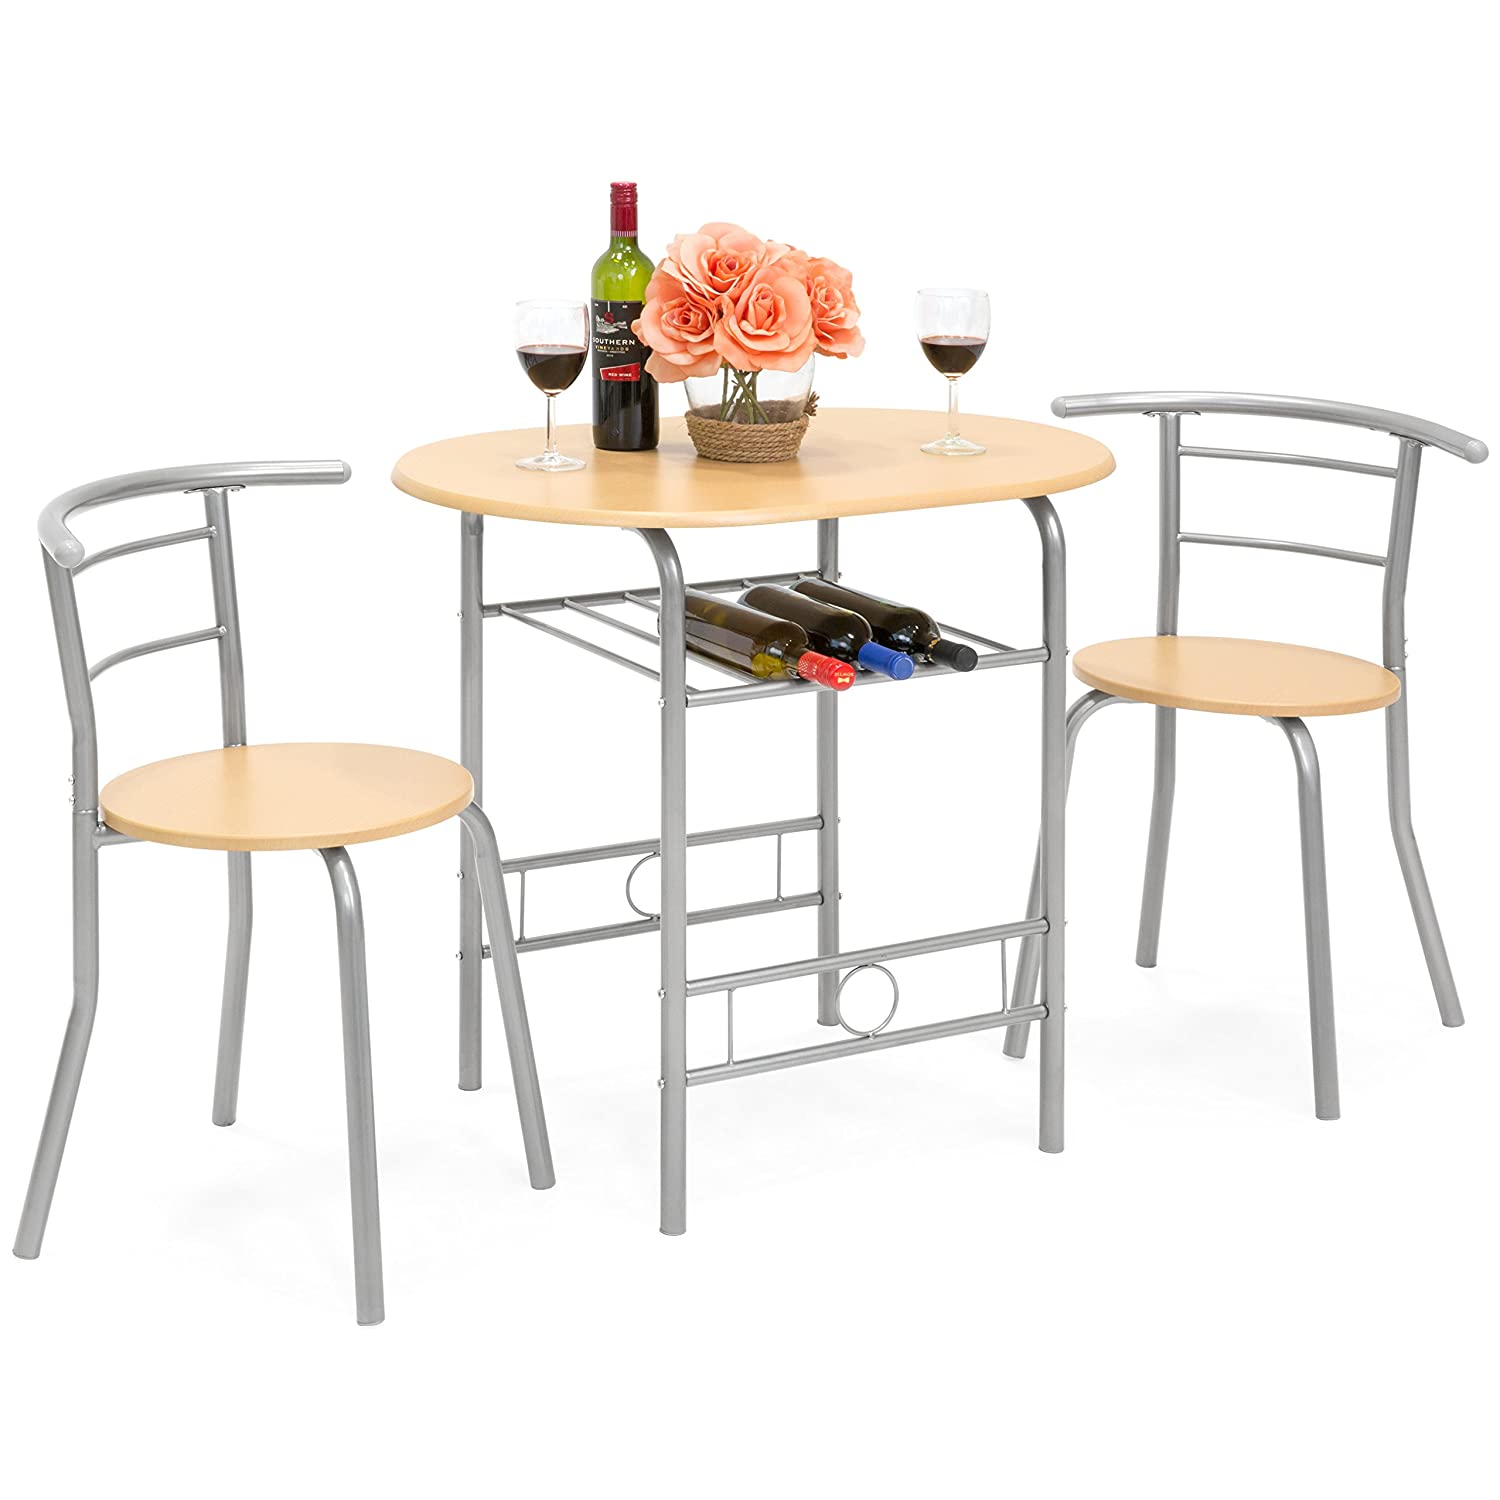 Best Choice Products 3-Piece Wooden Kitchen Dining Room Round Table and Chairs Set w/Built in Wine Rack (Natural)